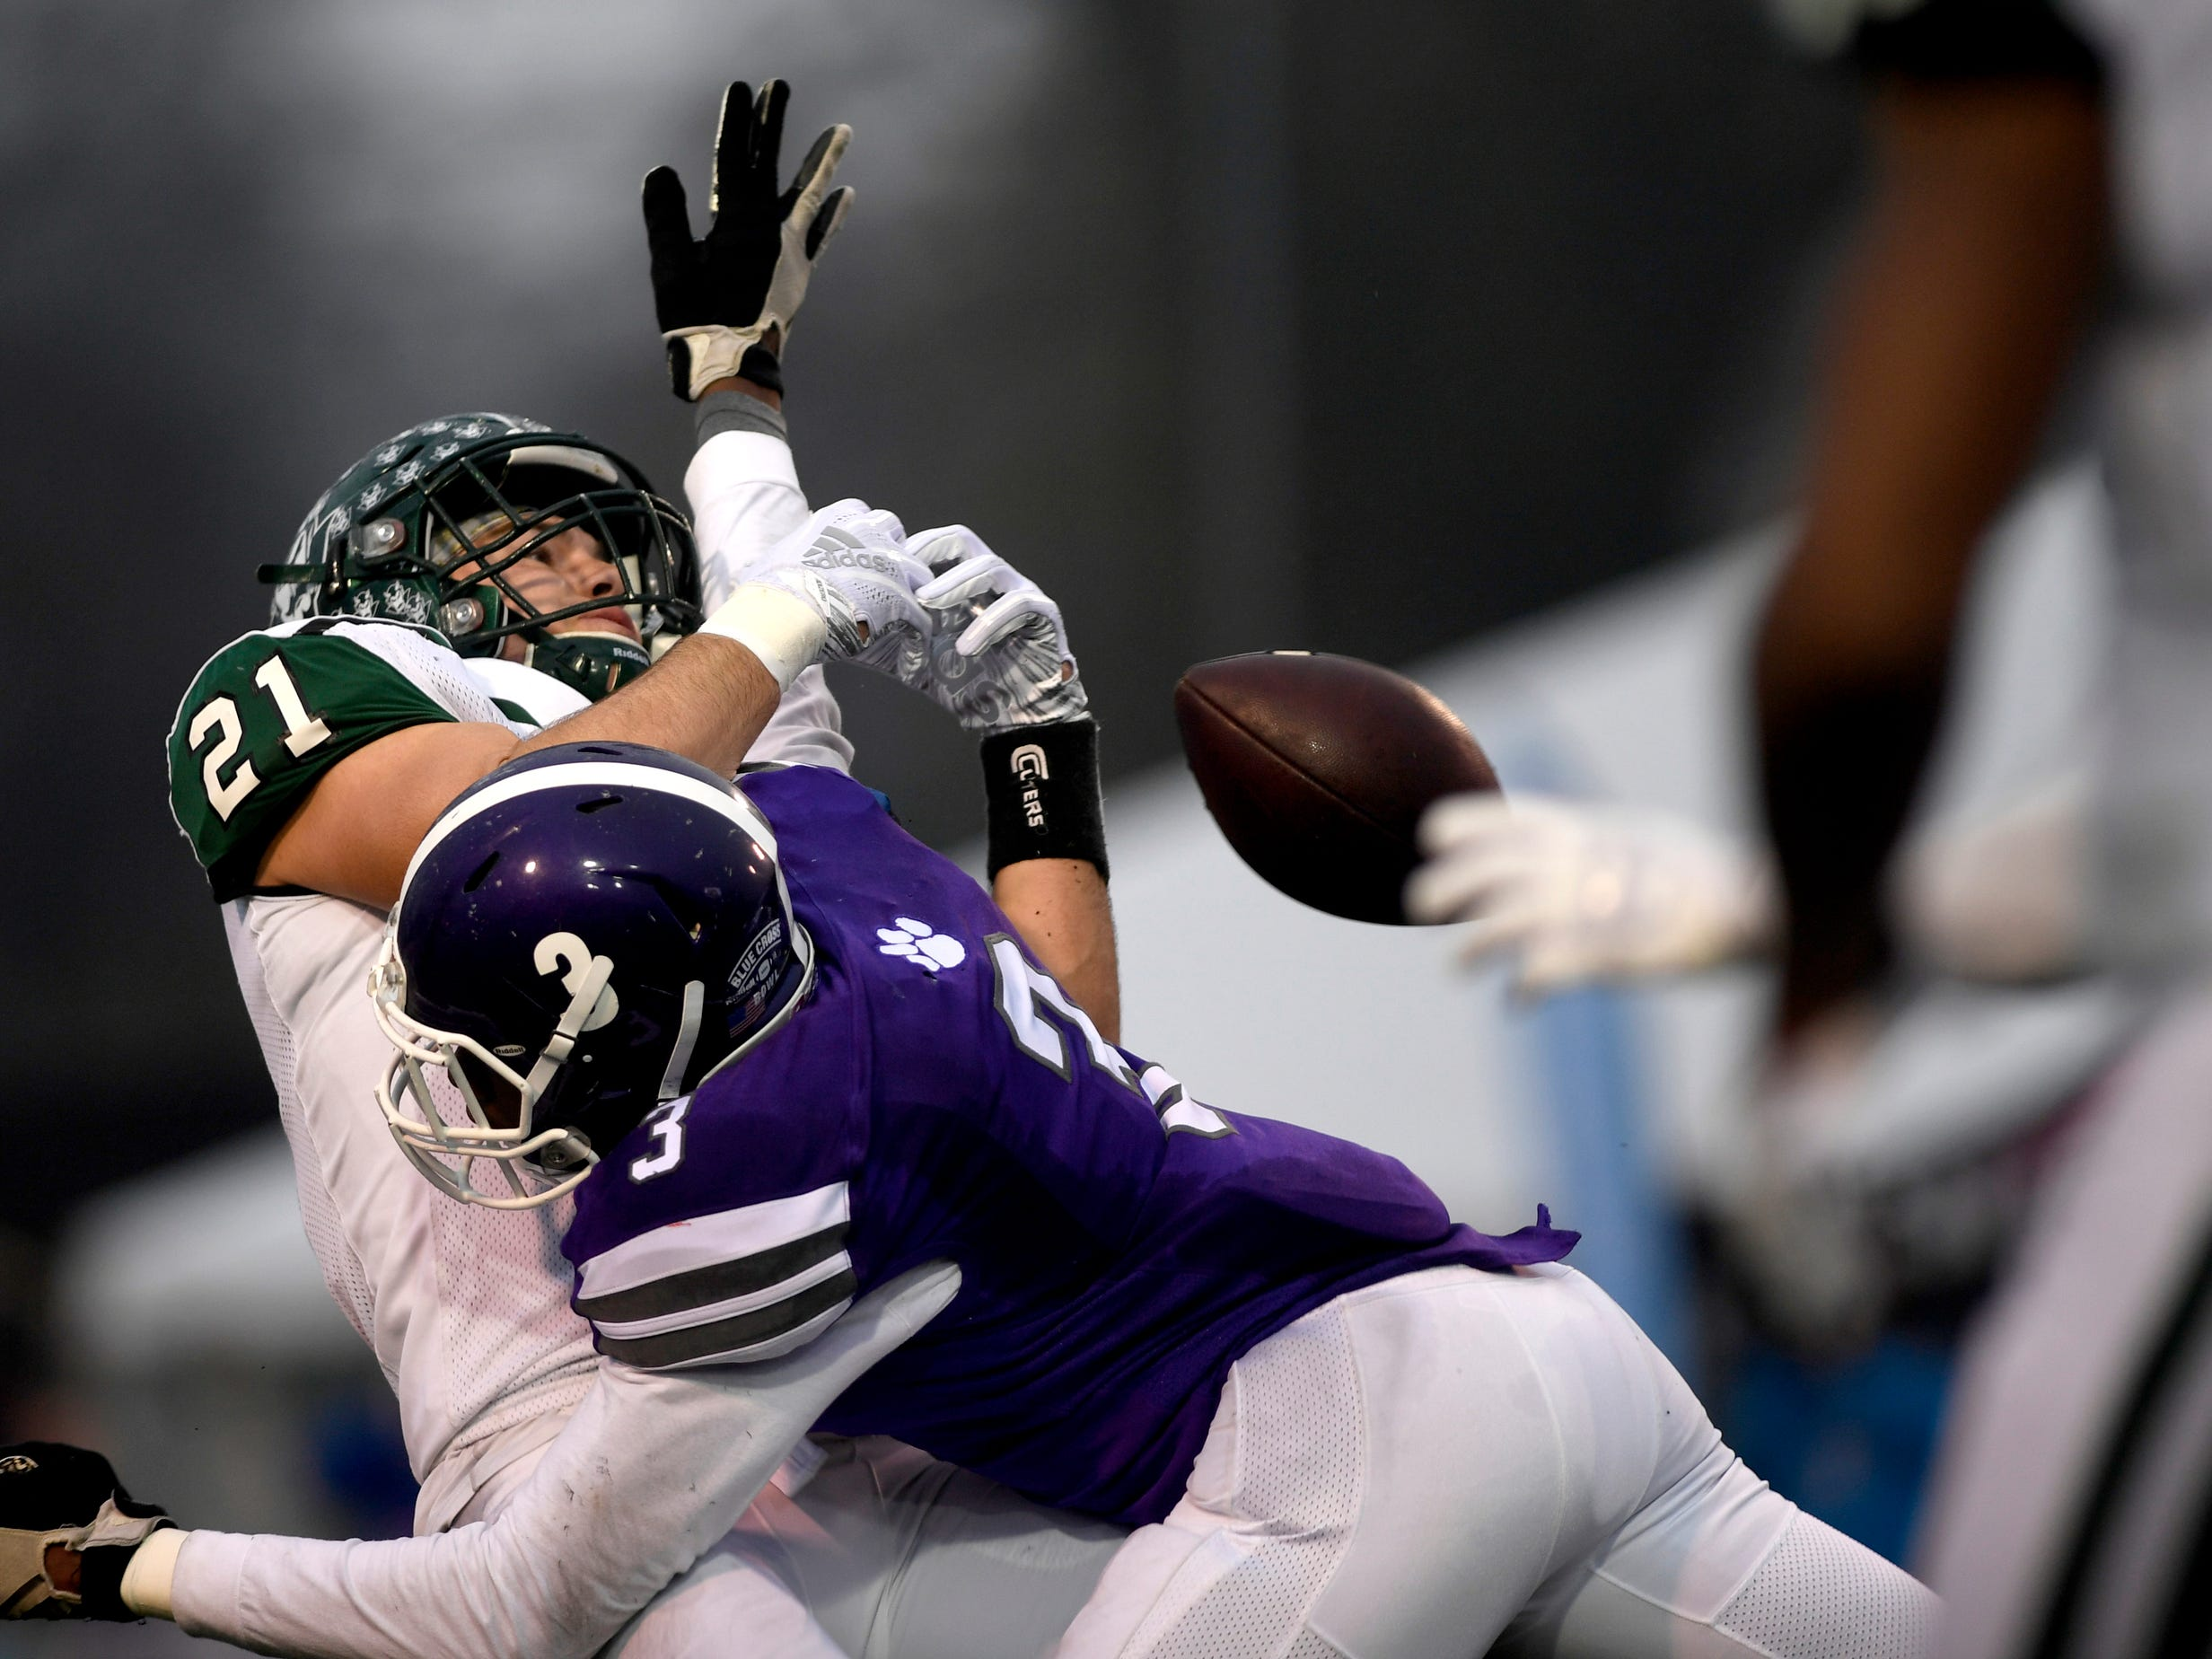 Greeneville's Cameron Hite (21) misses a pass as Haywood's Marquis Pugh (3) covers Hite during the Class 4A BlueCross Bowl state championship Thursday, Nov. 29, 2018, at Tennessee Tech's Tucker Stadium in Cookeville, Tenn.